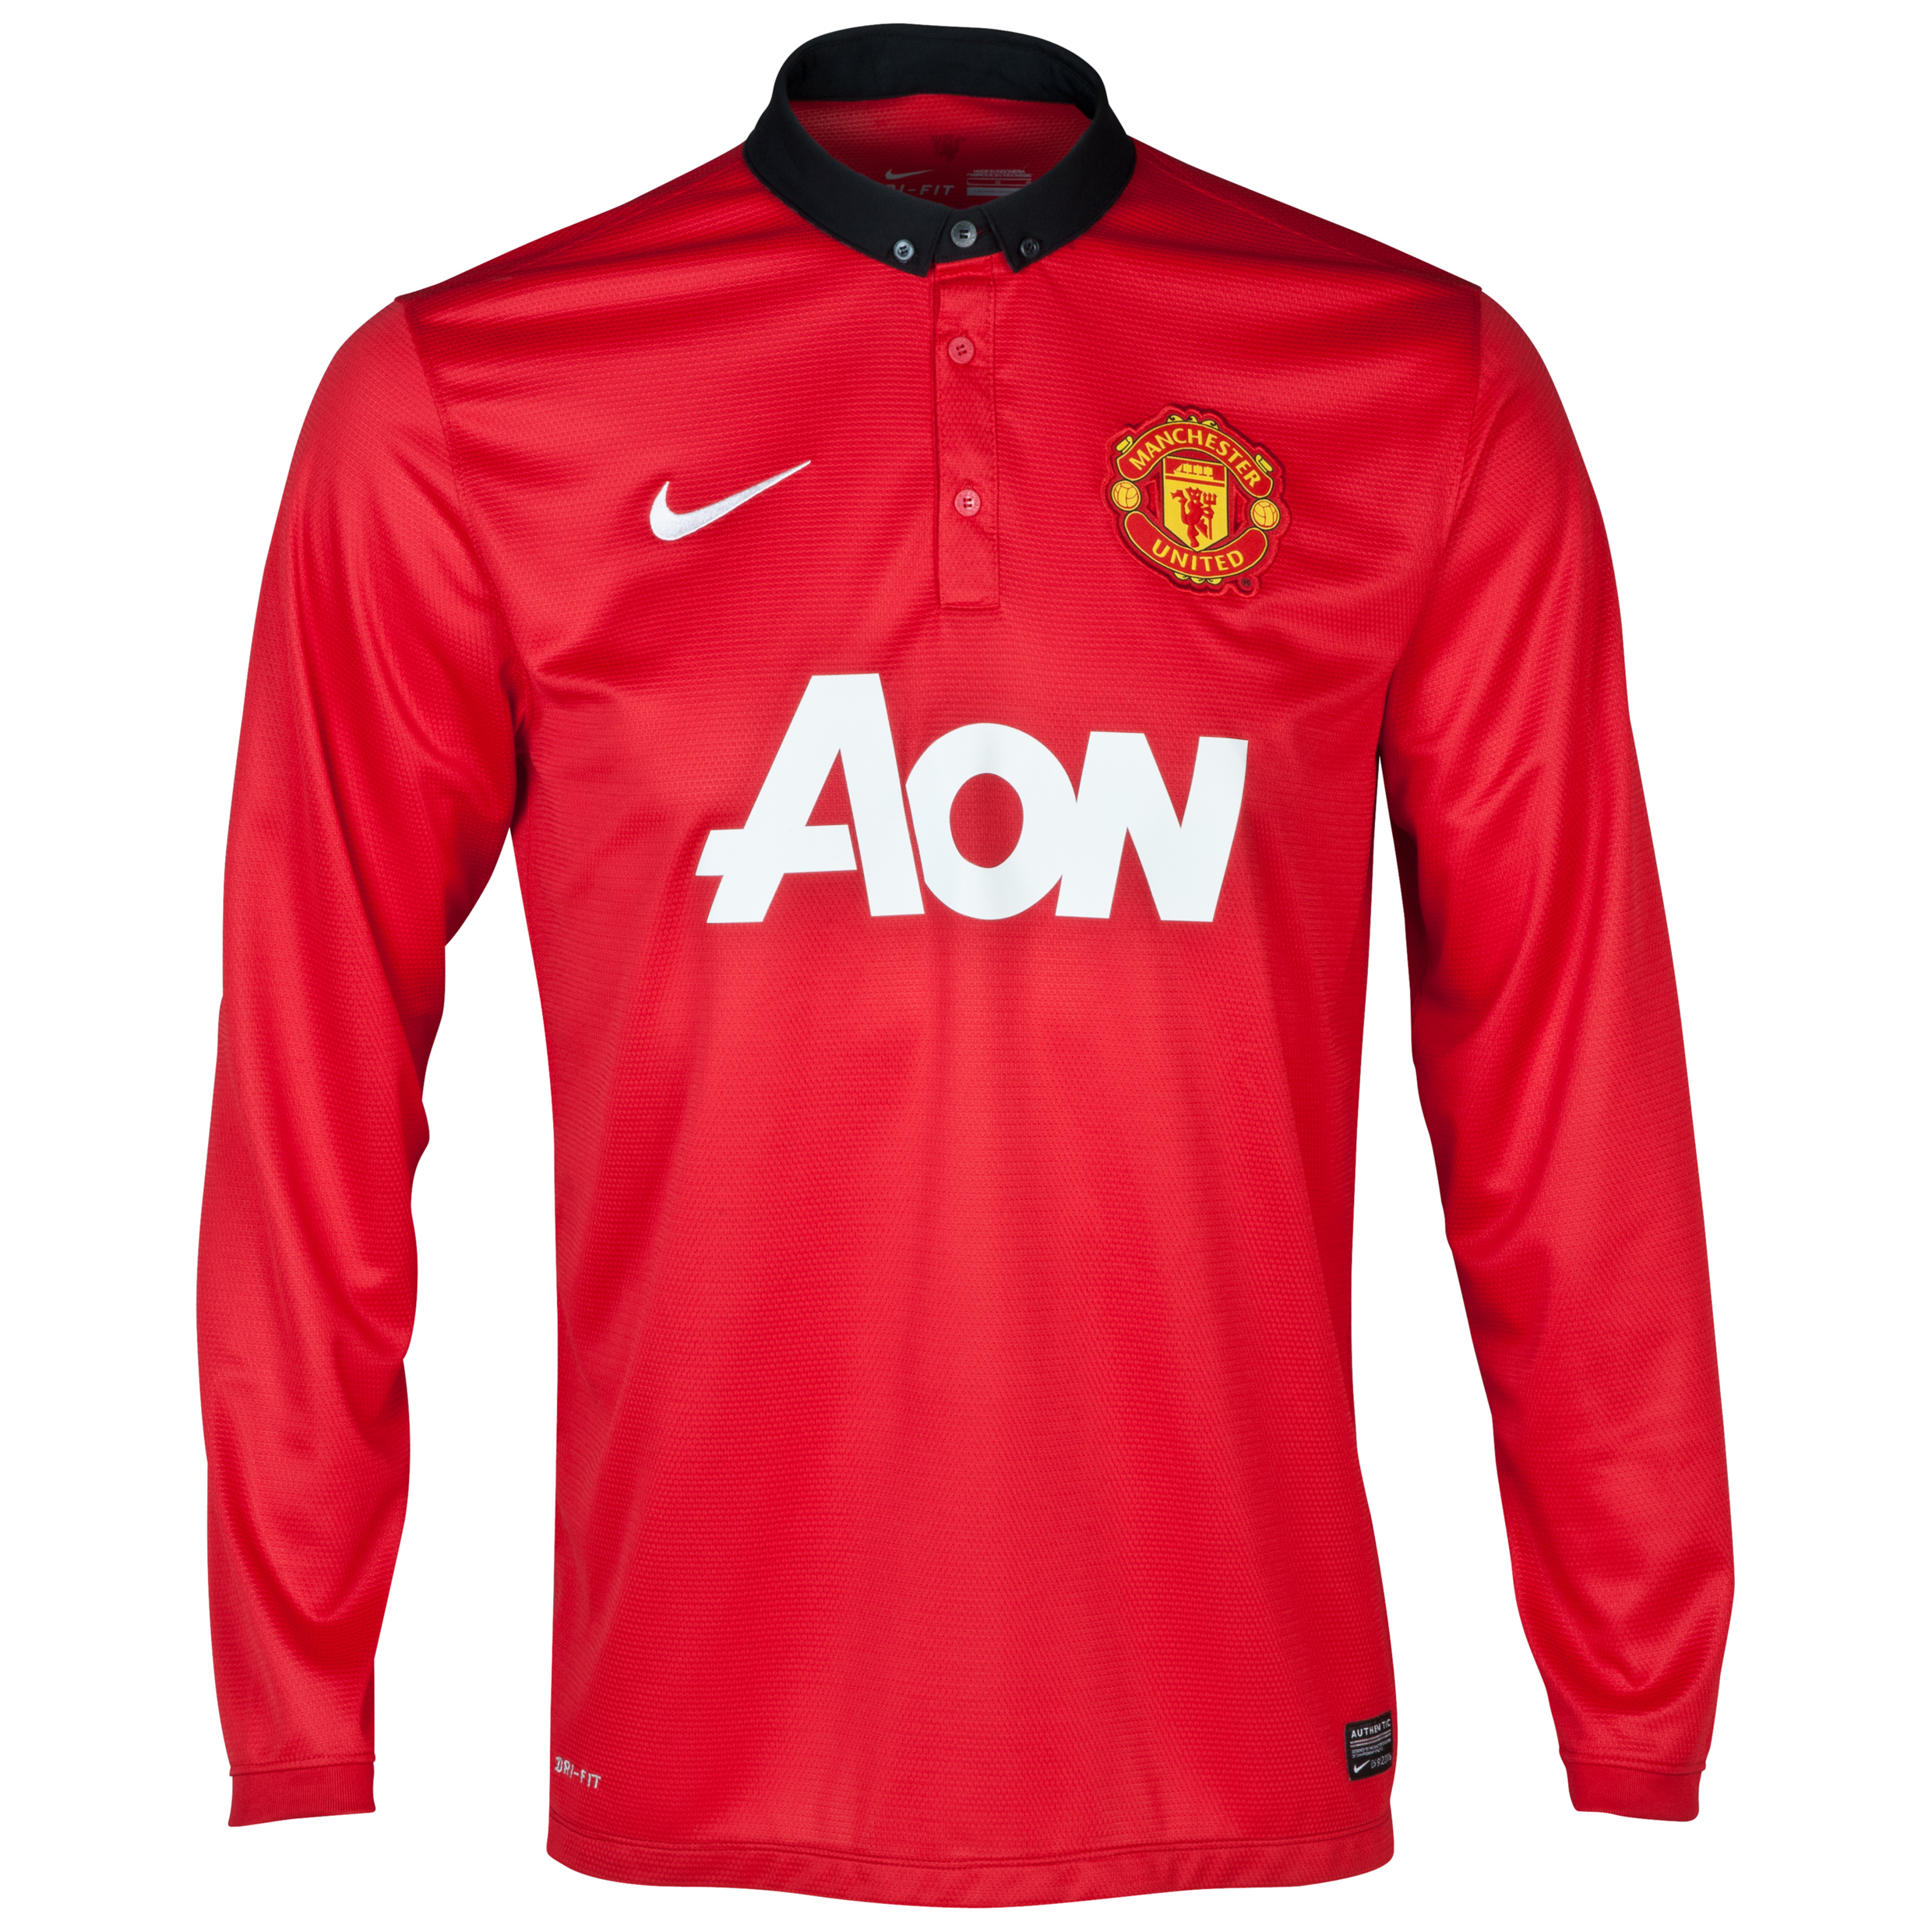 Manchester United Home Shirt 2013/14 - Long Sleeved